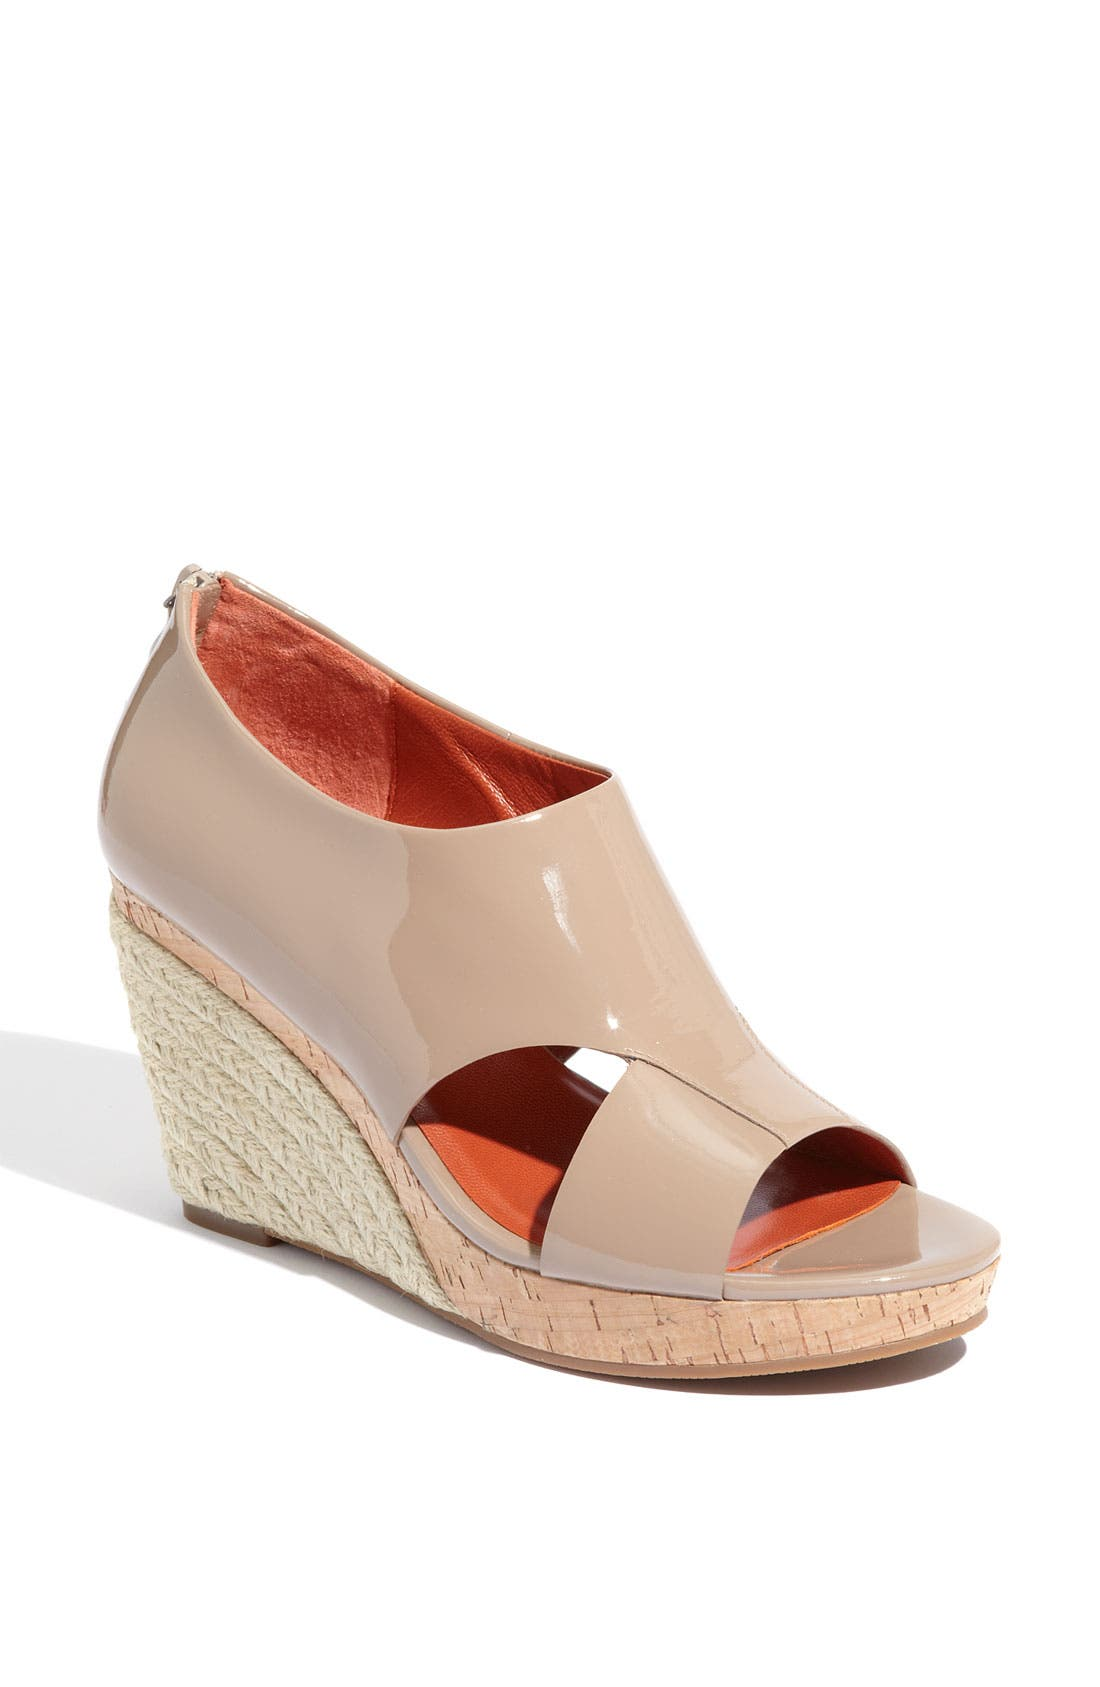 Main Image - Cole Haan 'Air Donella' Sandal